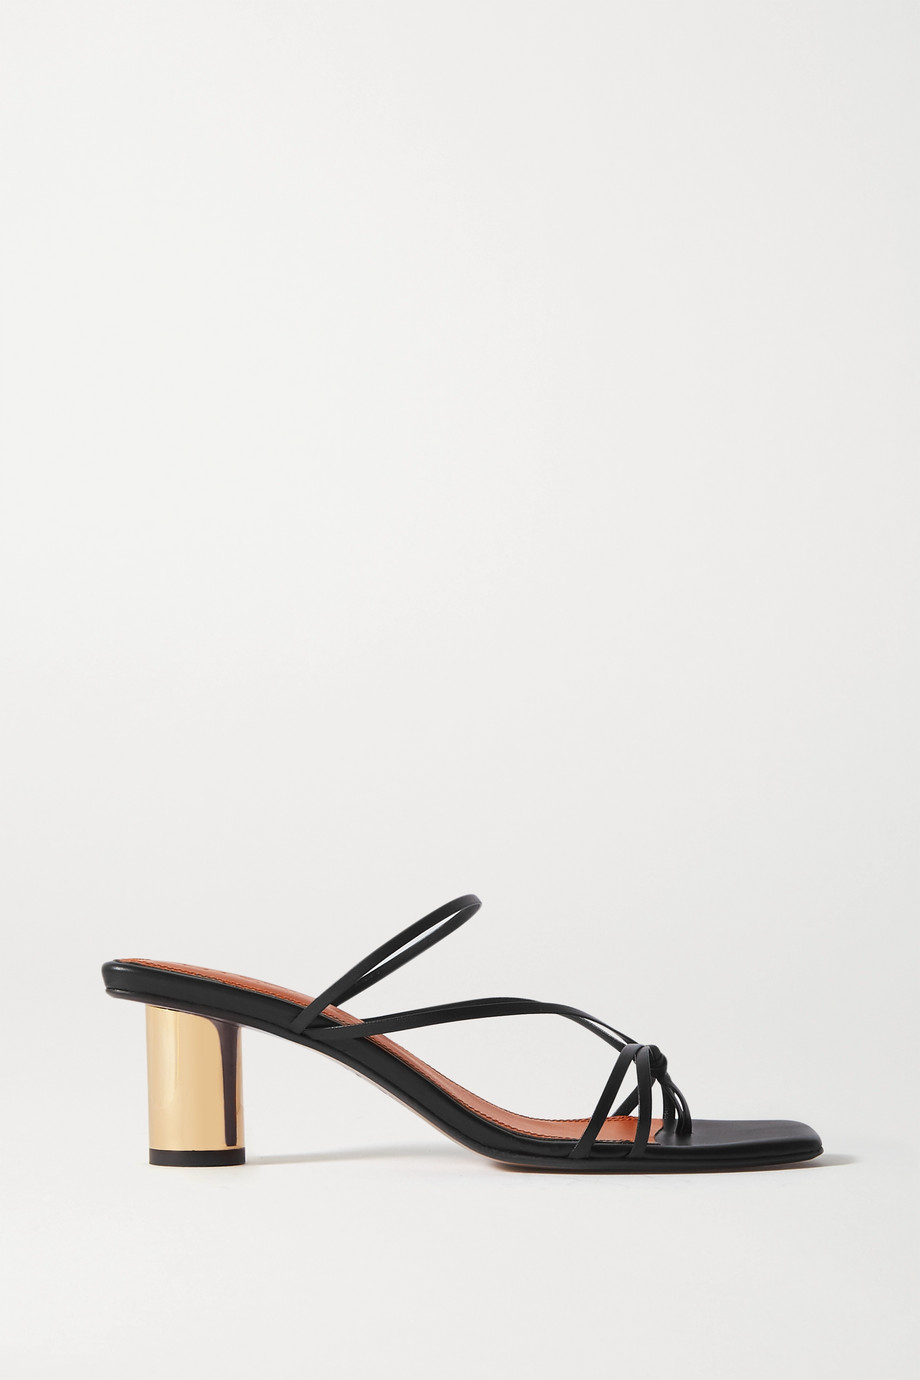 Souliers Martinez Aranda leather mules